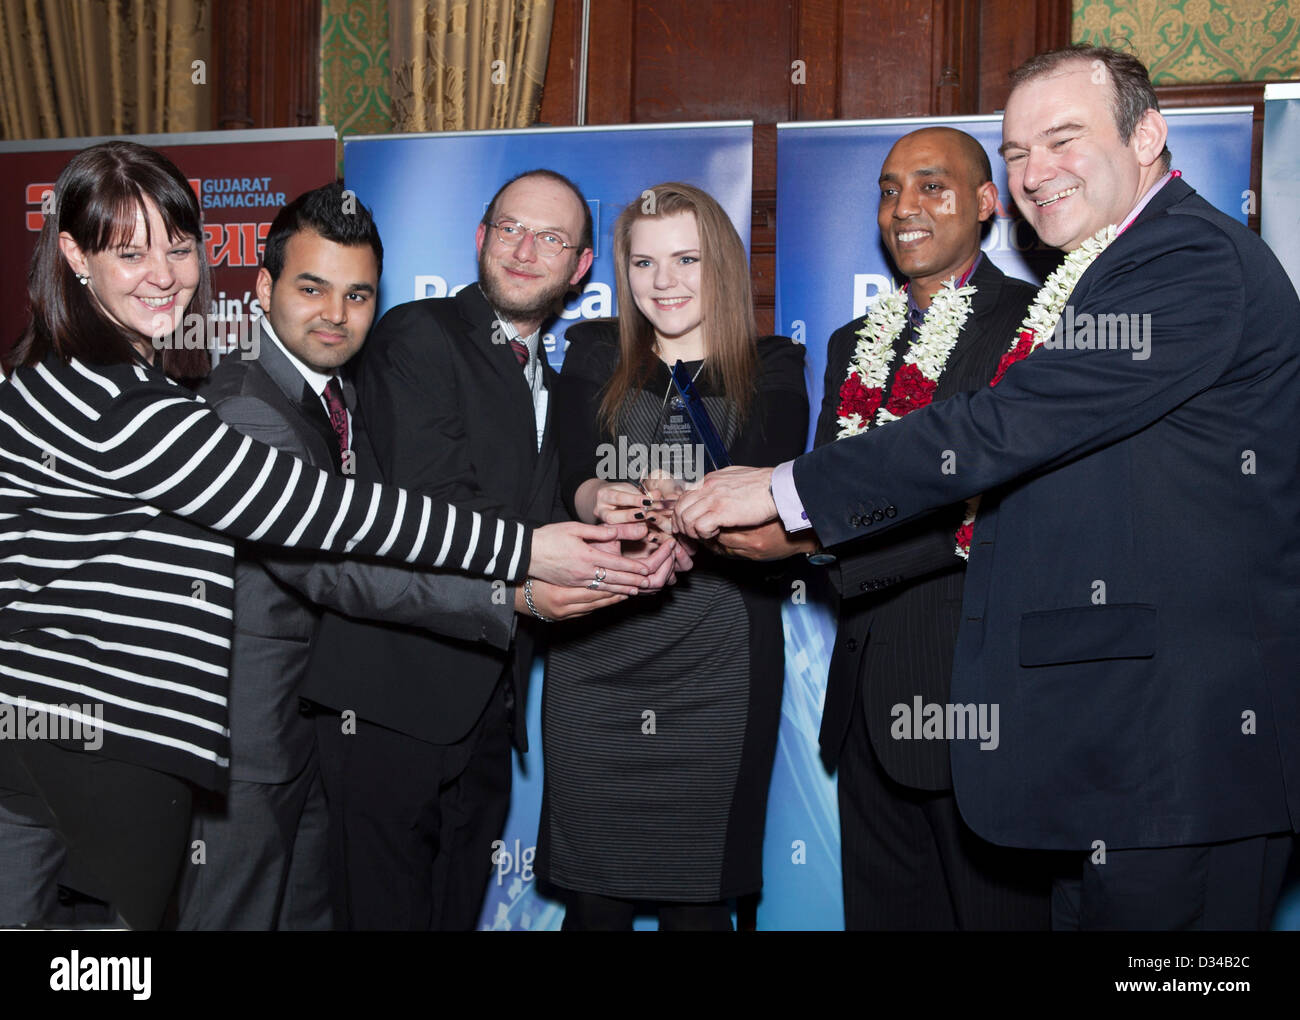 London, UK. 7th February 2013. Snappy Snap, Edgware, staff receiving their award for being The high street enterprise - Stock Image